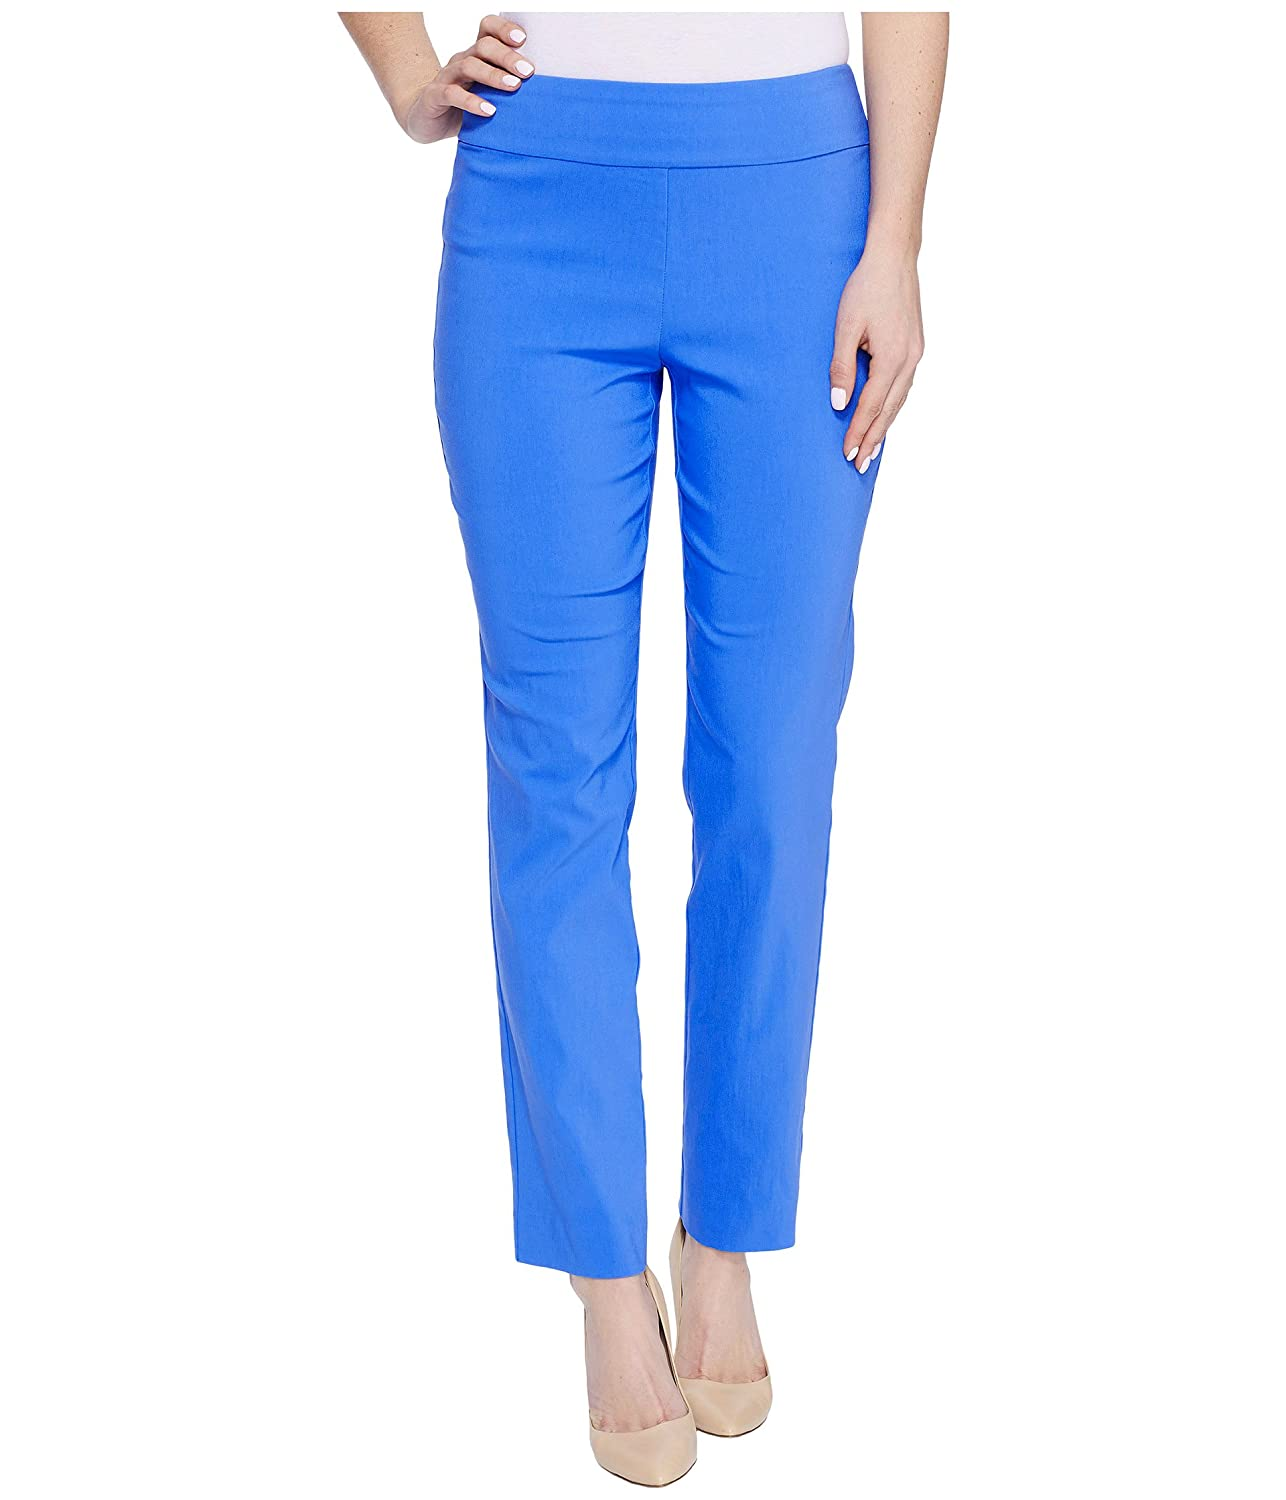 27354678ec4 Krazy Larry Pull-On Ankle Pants Made in USA Missy Sizes 2-16. Inseam 28